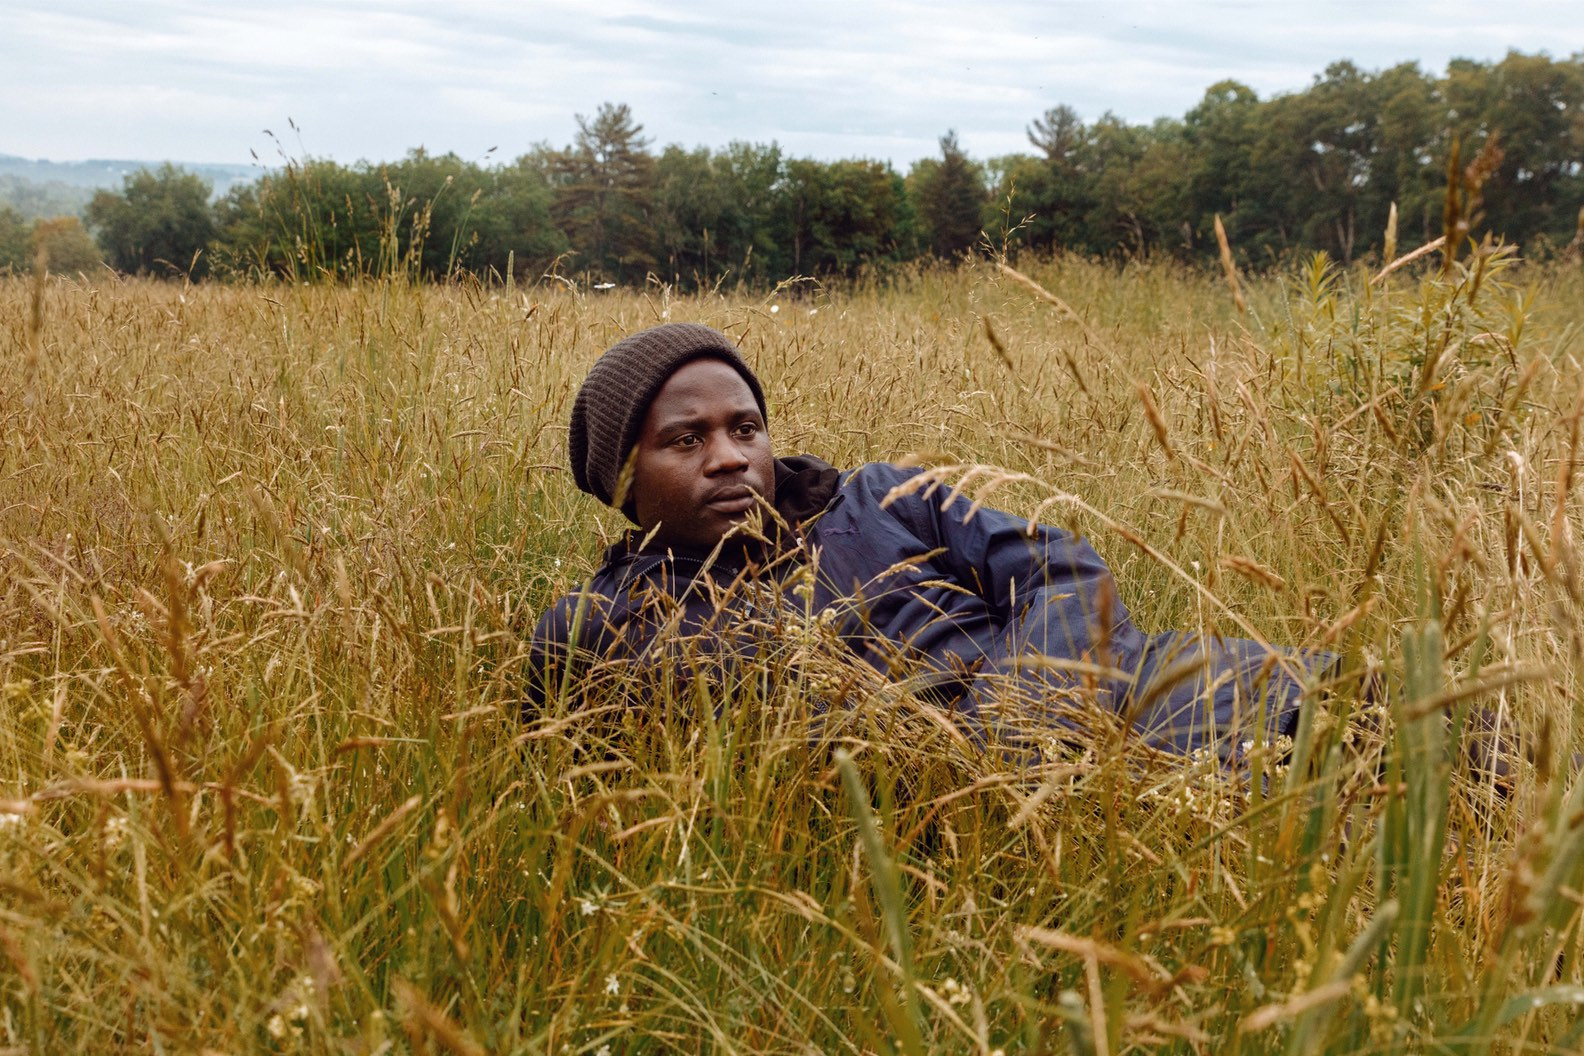 Man laying in grass, Gioncarlo Valentine ©2020, journal of wild culture